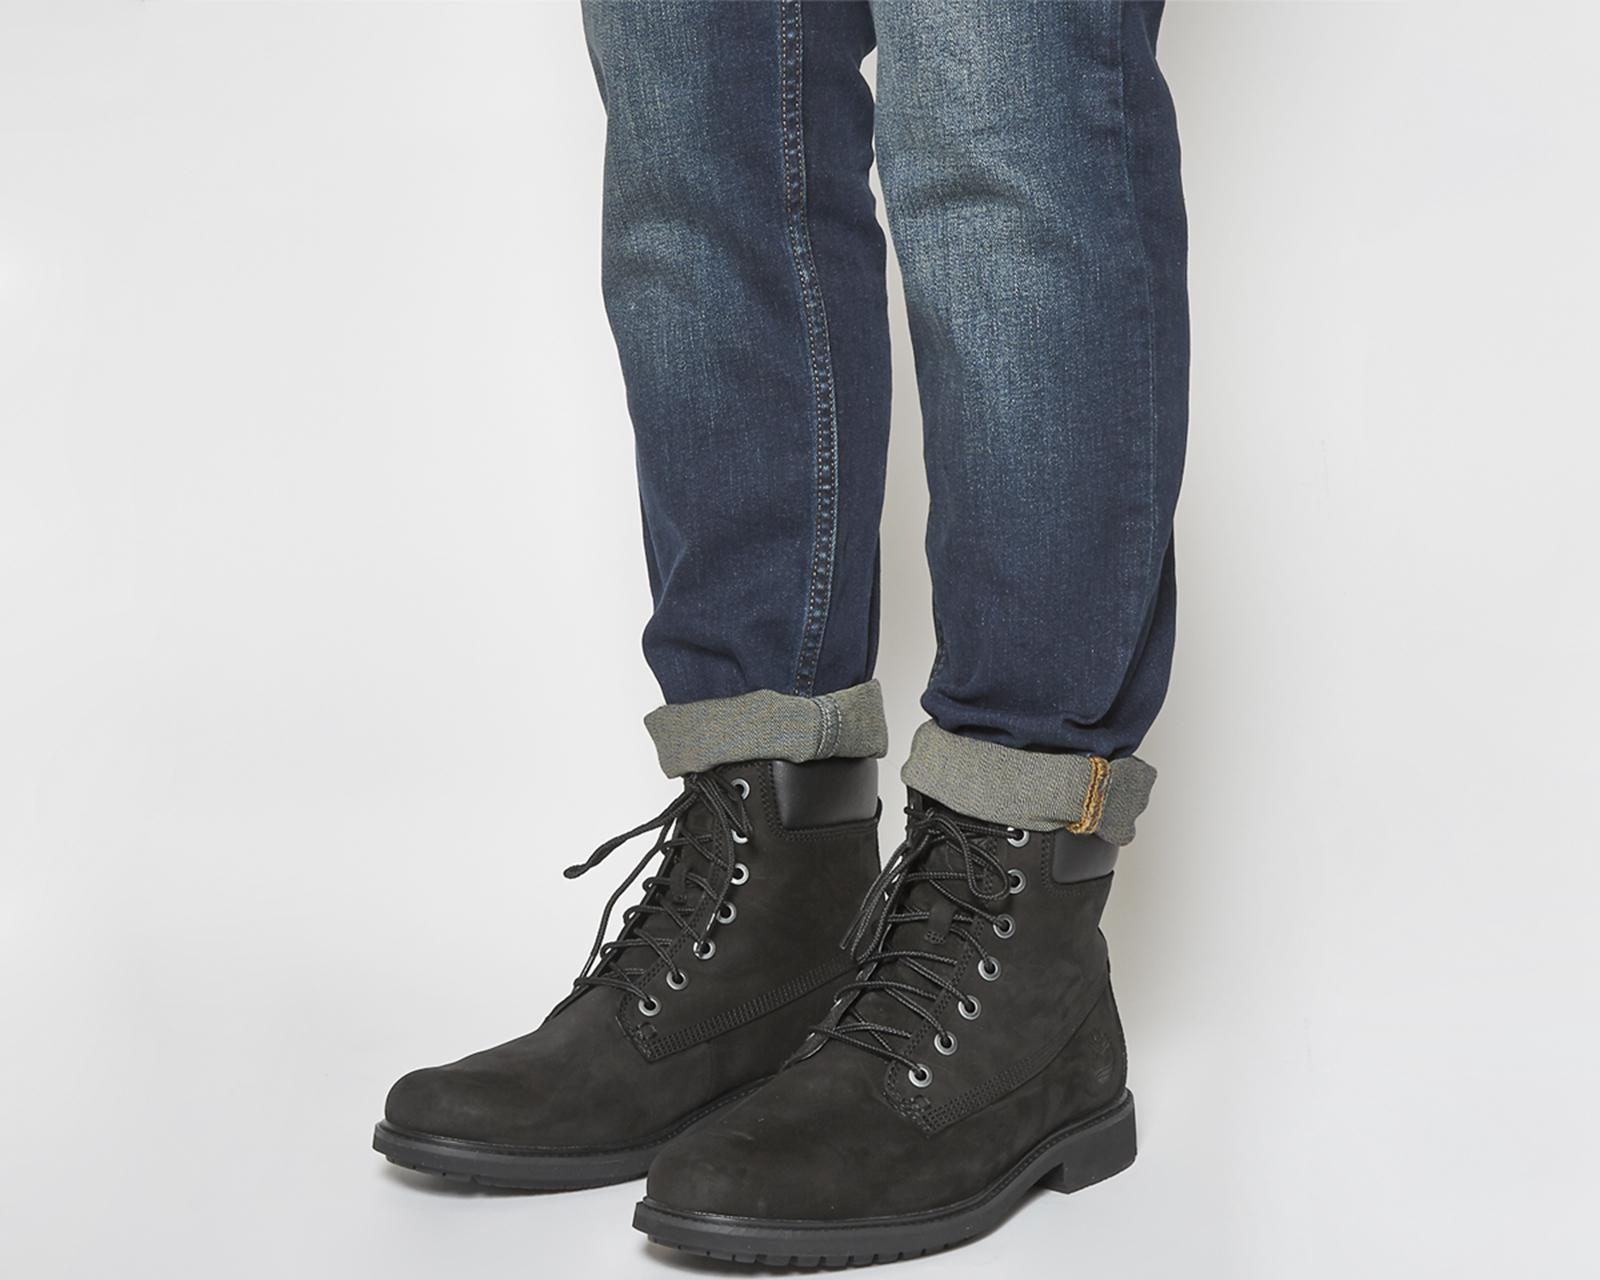 Lyst - Timberland Mens Slim 6 Inch Boots in Black for Men 4ef005f7d